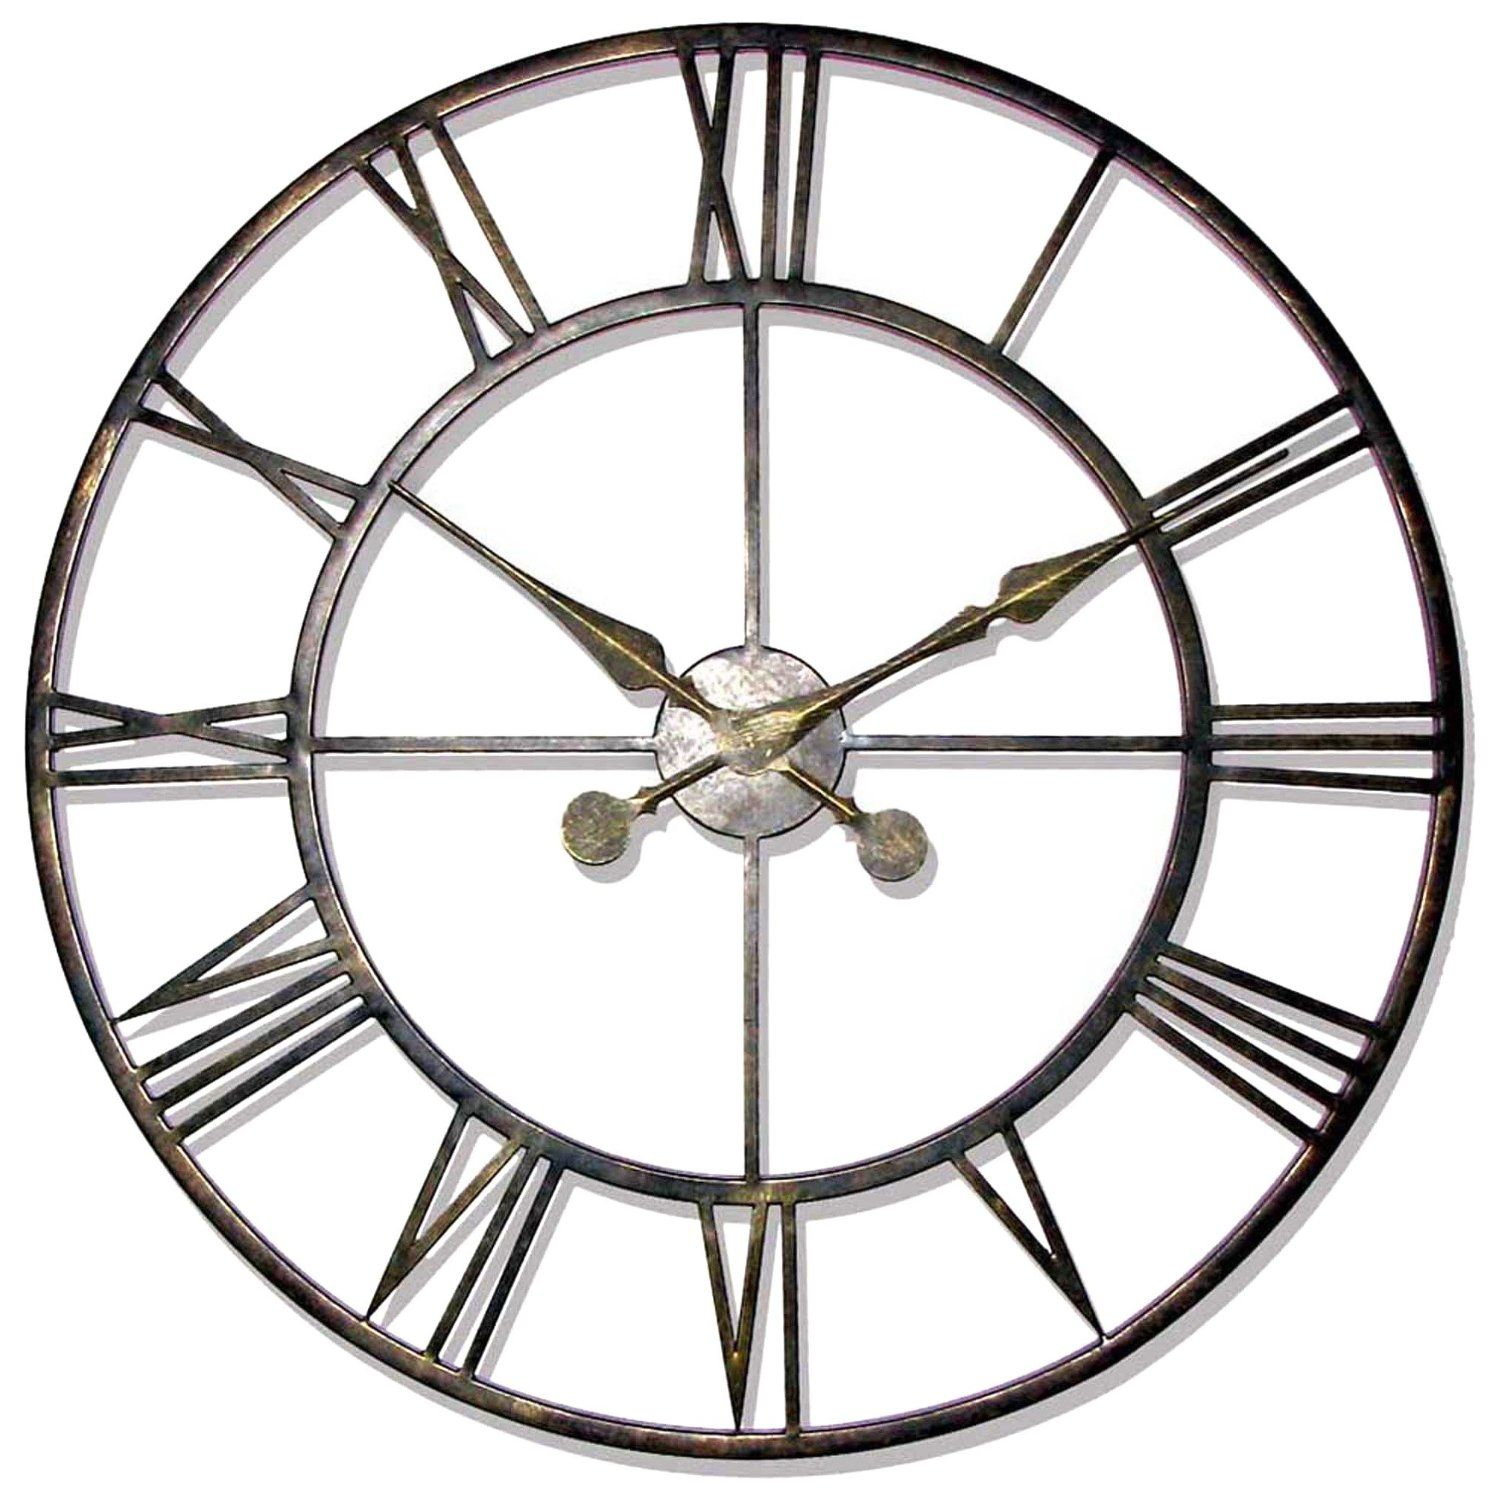 Decorative Wall Clocks For Living Room Stylish Large Wall Clocks Fun Fashionable Home Accessories And